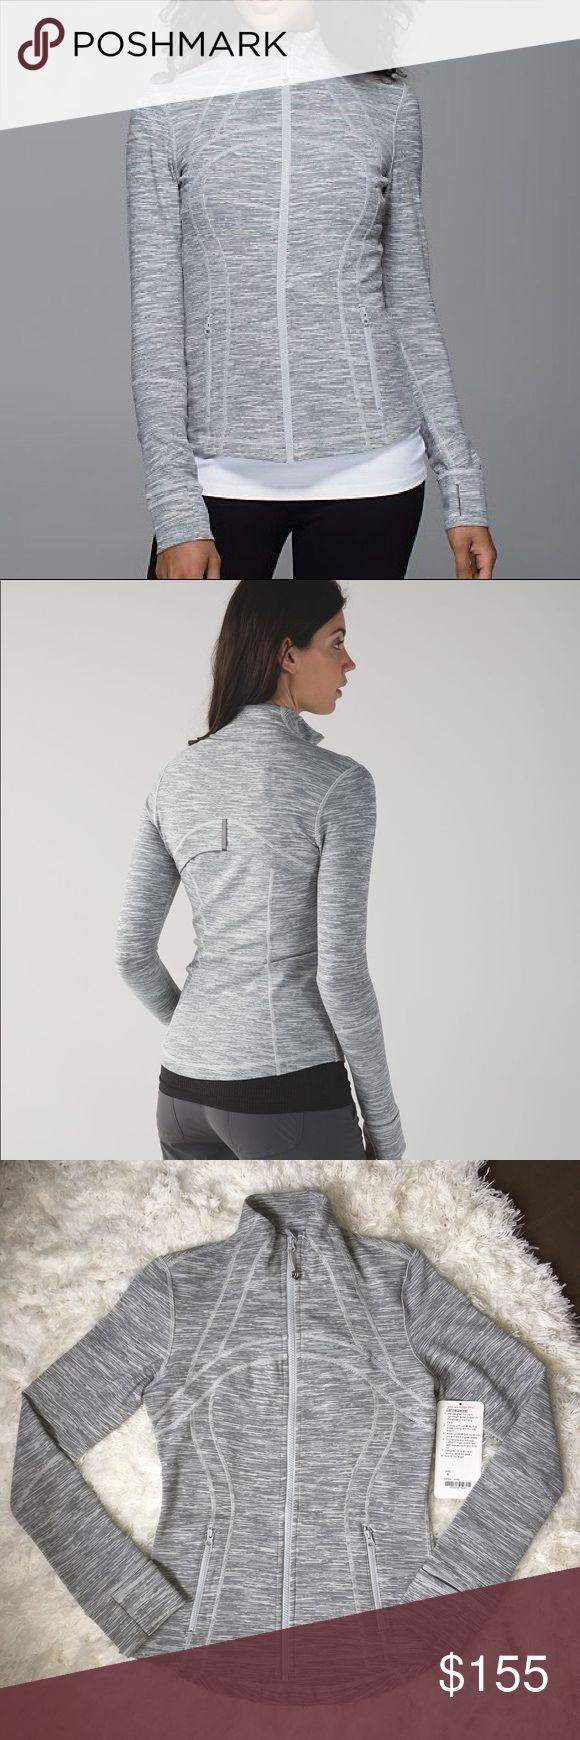 "Lulu Wee Are From Space Silver Spoon Define 6 Lululemon ""Wee Are From Space"" Define jacket in the color Silver Spoon. Size 6. Like new condition. I literally popped the tag and wore this once to the store. Smoke free home. lululemon athletica Jackets & Coats"